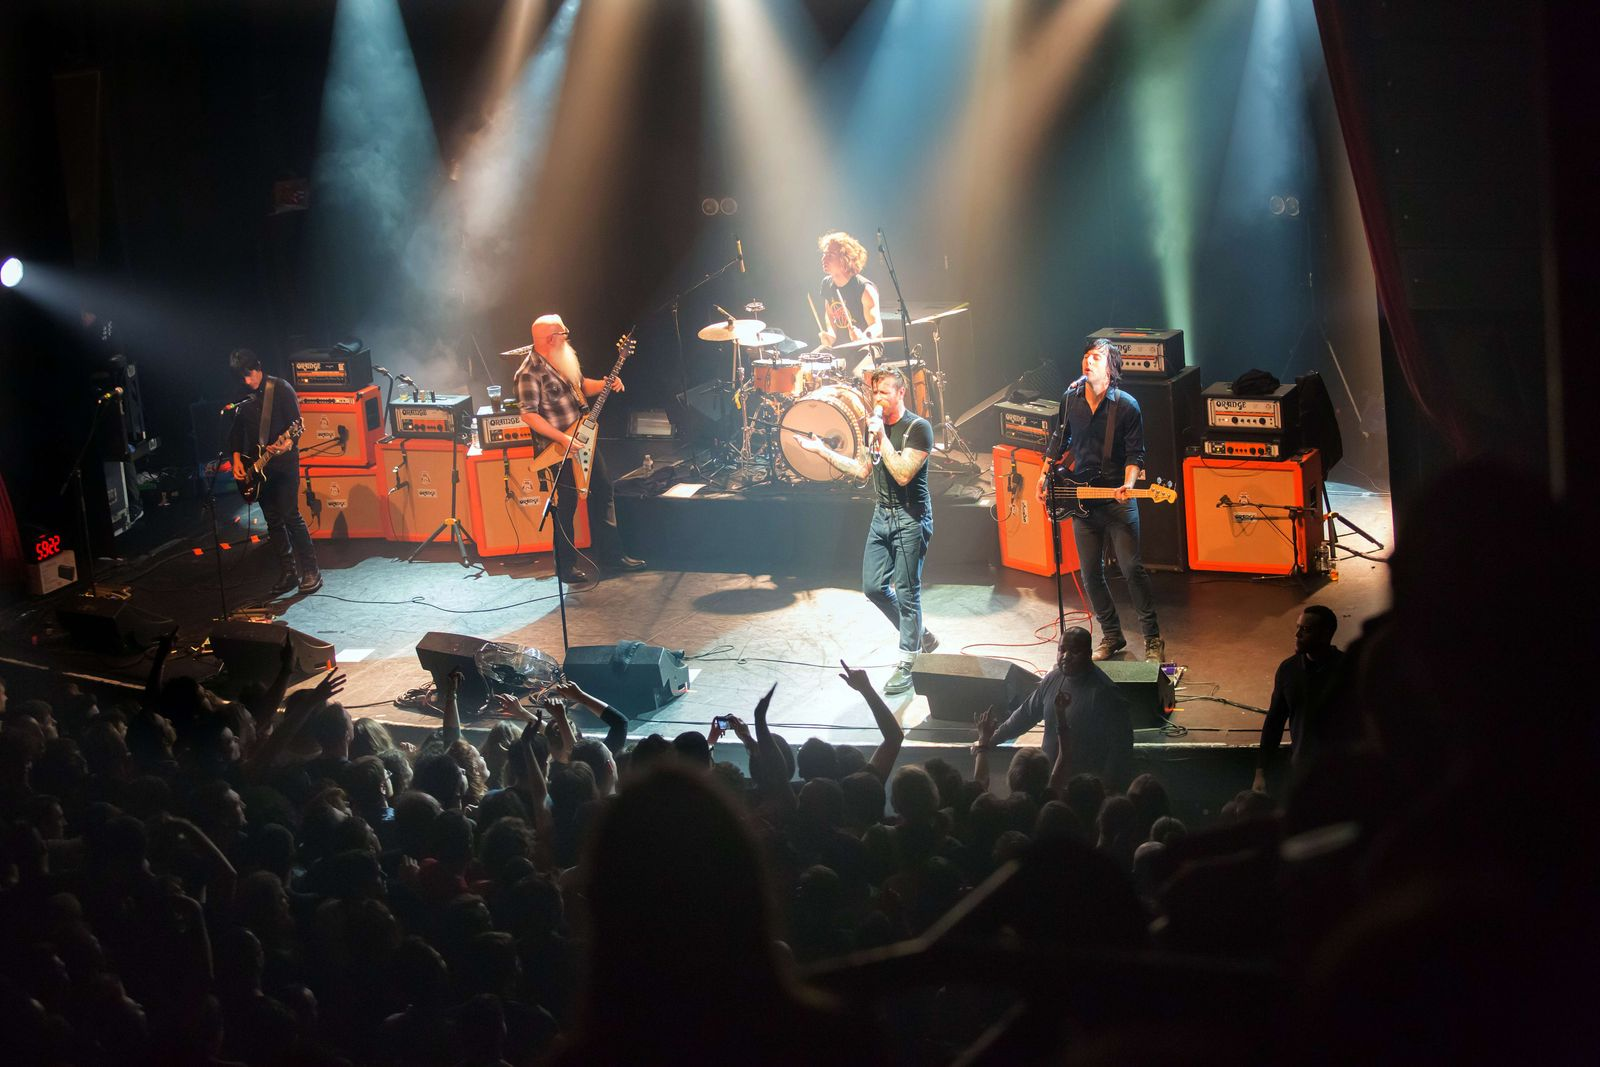 Frankreich/ Paris/ Terroranschlag/ Eagles of Death Metal